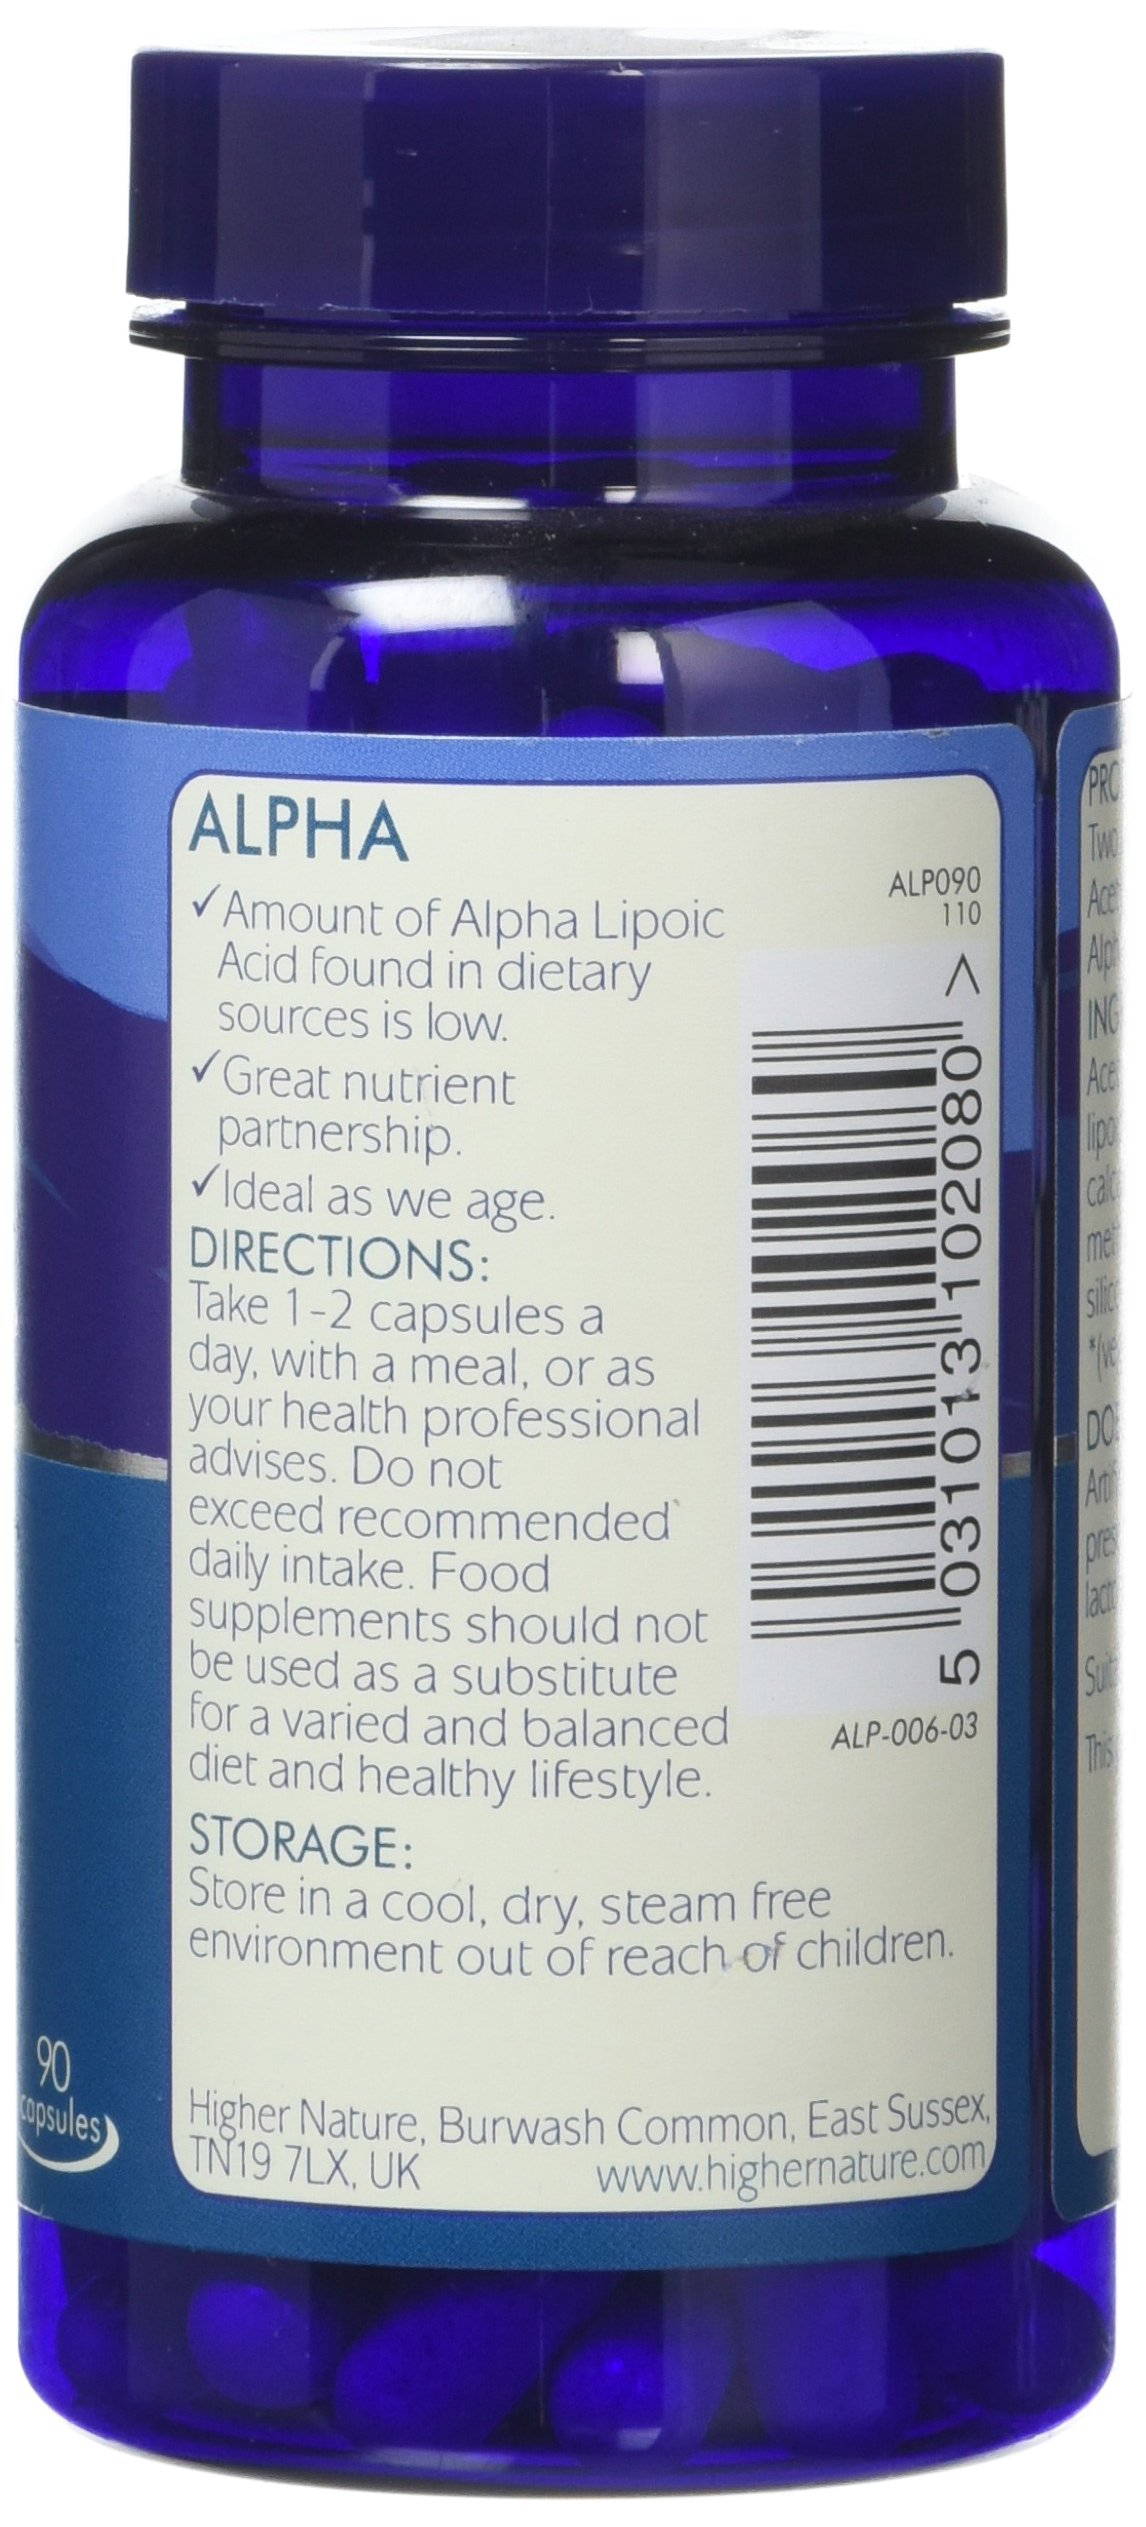 Higher Nature Alpha – Alpha Lipoic Acid and Acetyl-l-Carnitine – 90 Capsules